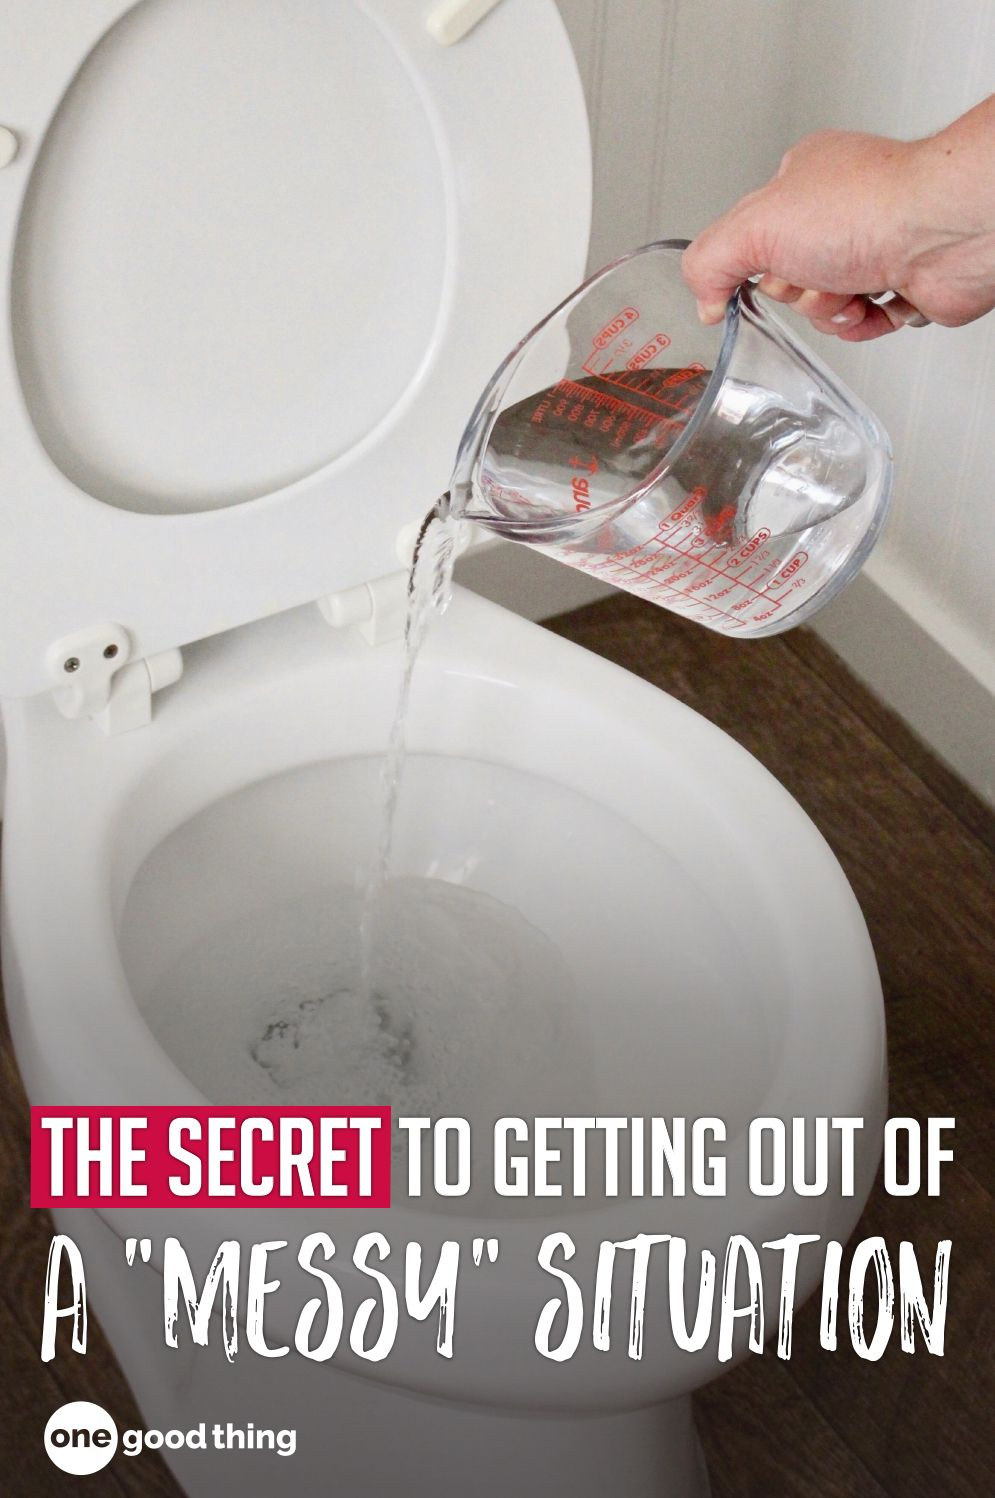 How To Unclog A Toilet Without A Plunger Clogged Toilet How To Unclog Toilet Unclog